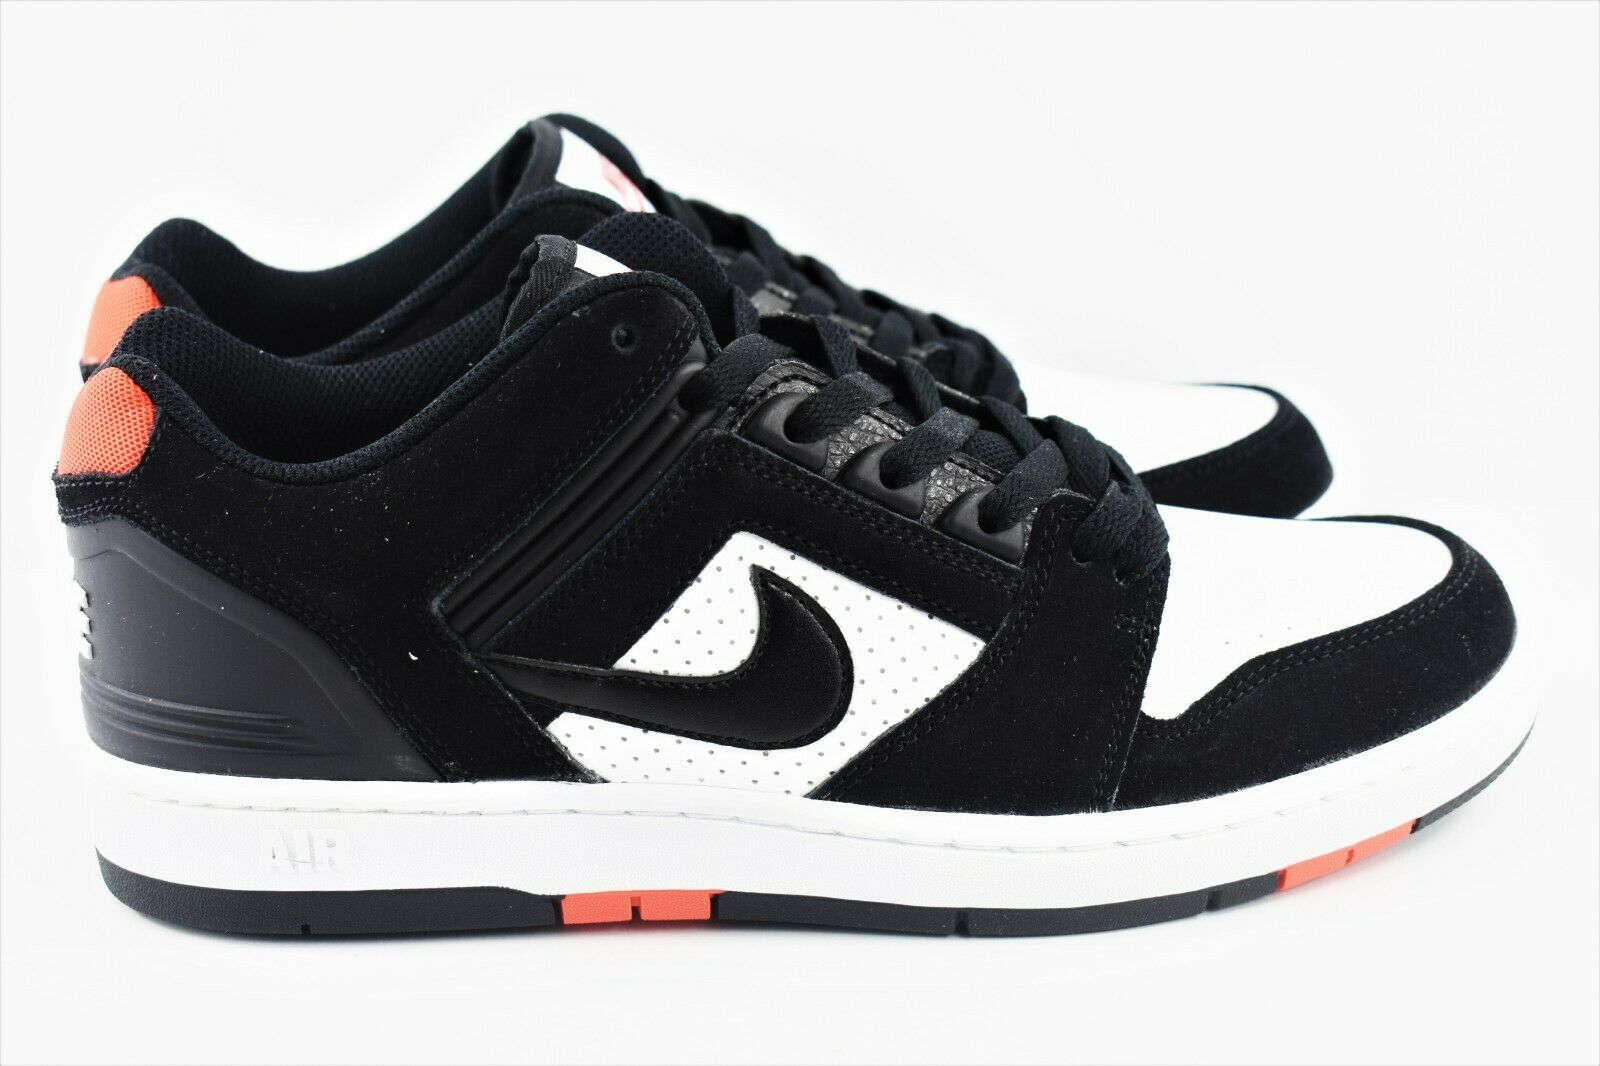 Nike SB Air Force II Low Mens Size 7.5 shoes Bred AO0300 006